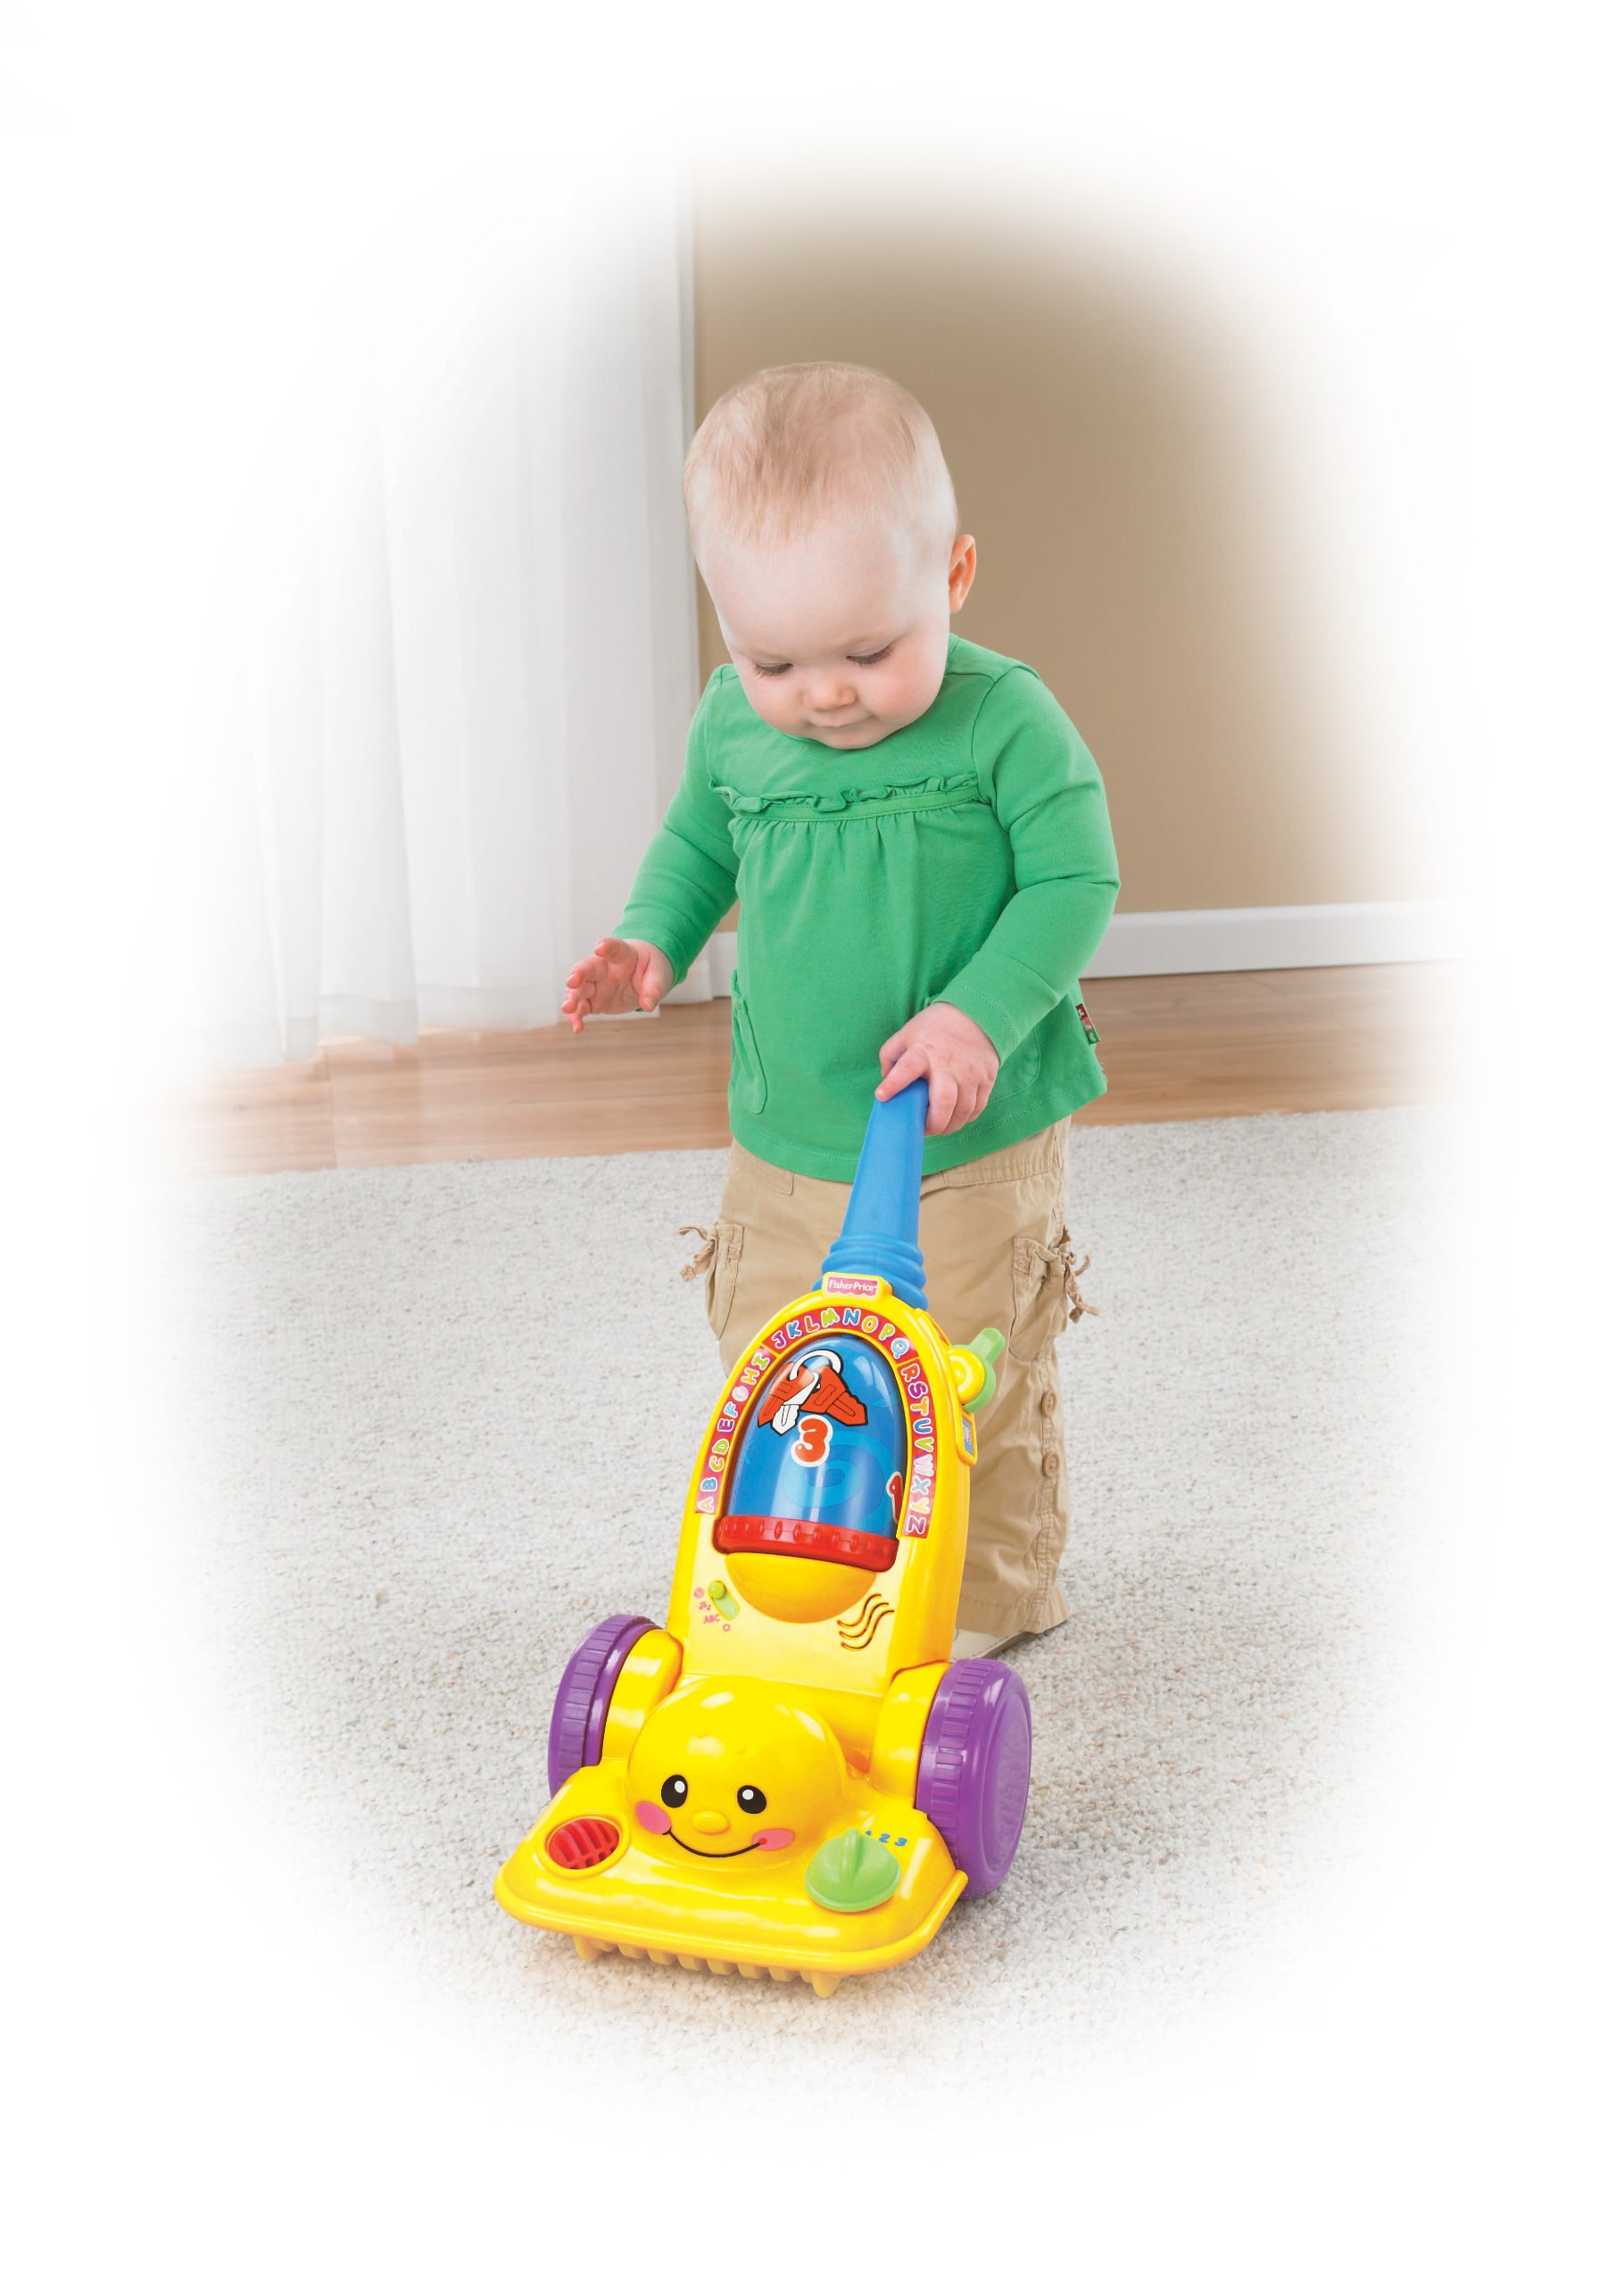 Fisher-Price Laugh & Learn Learning Vacuum Cleaner